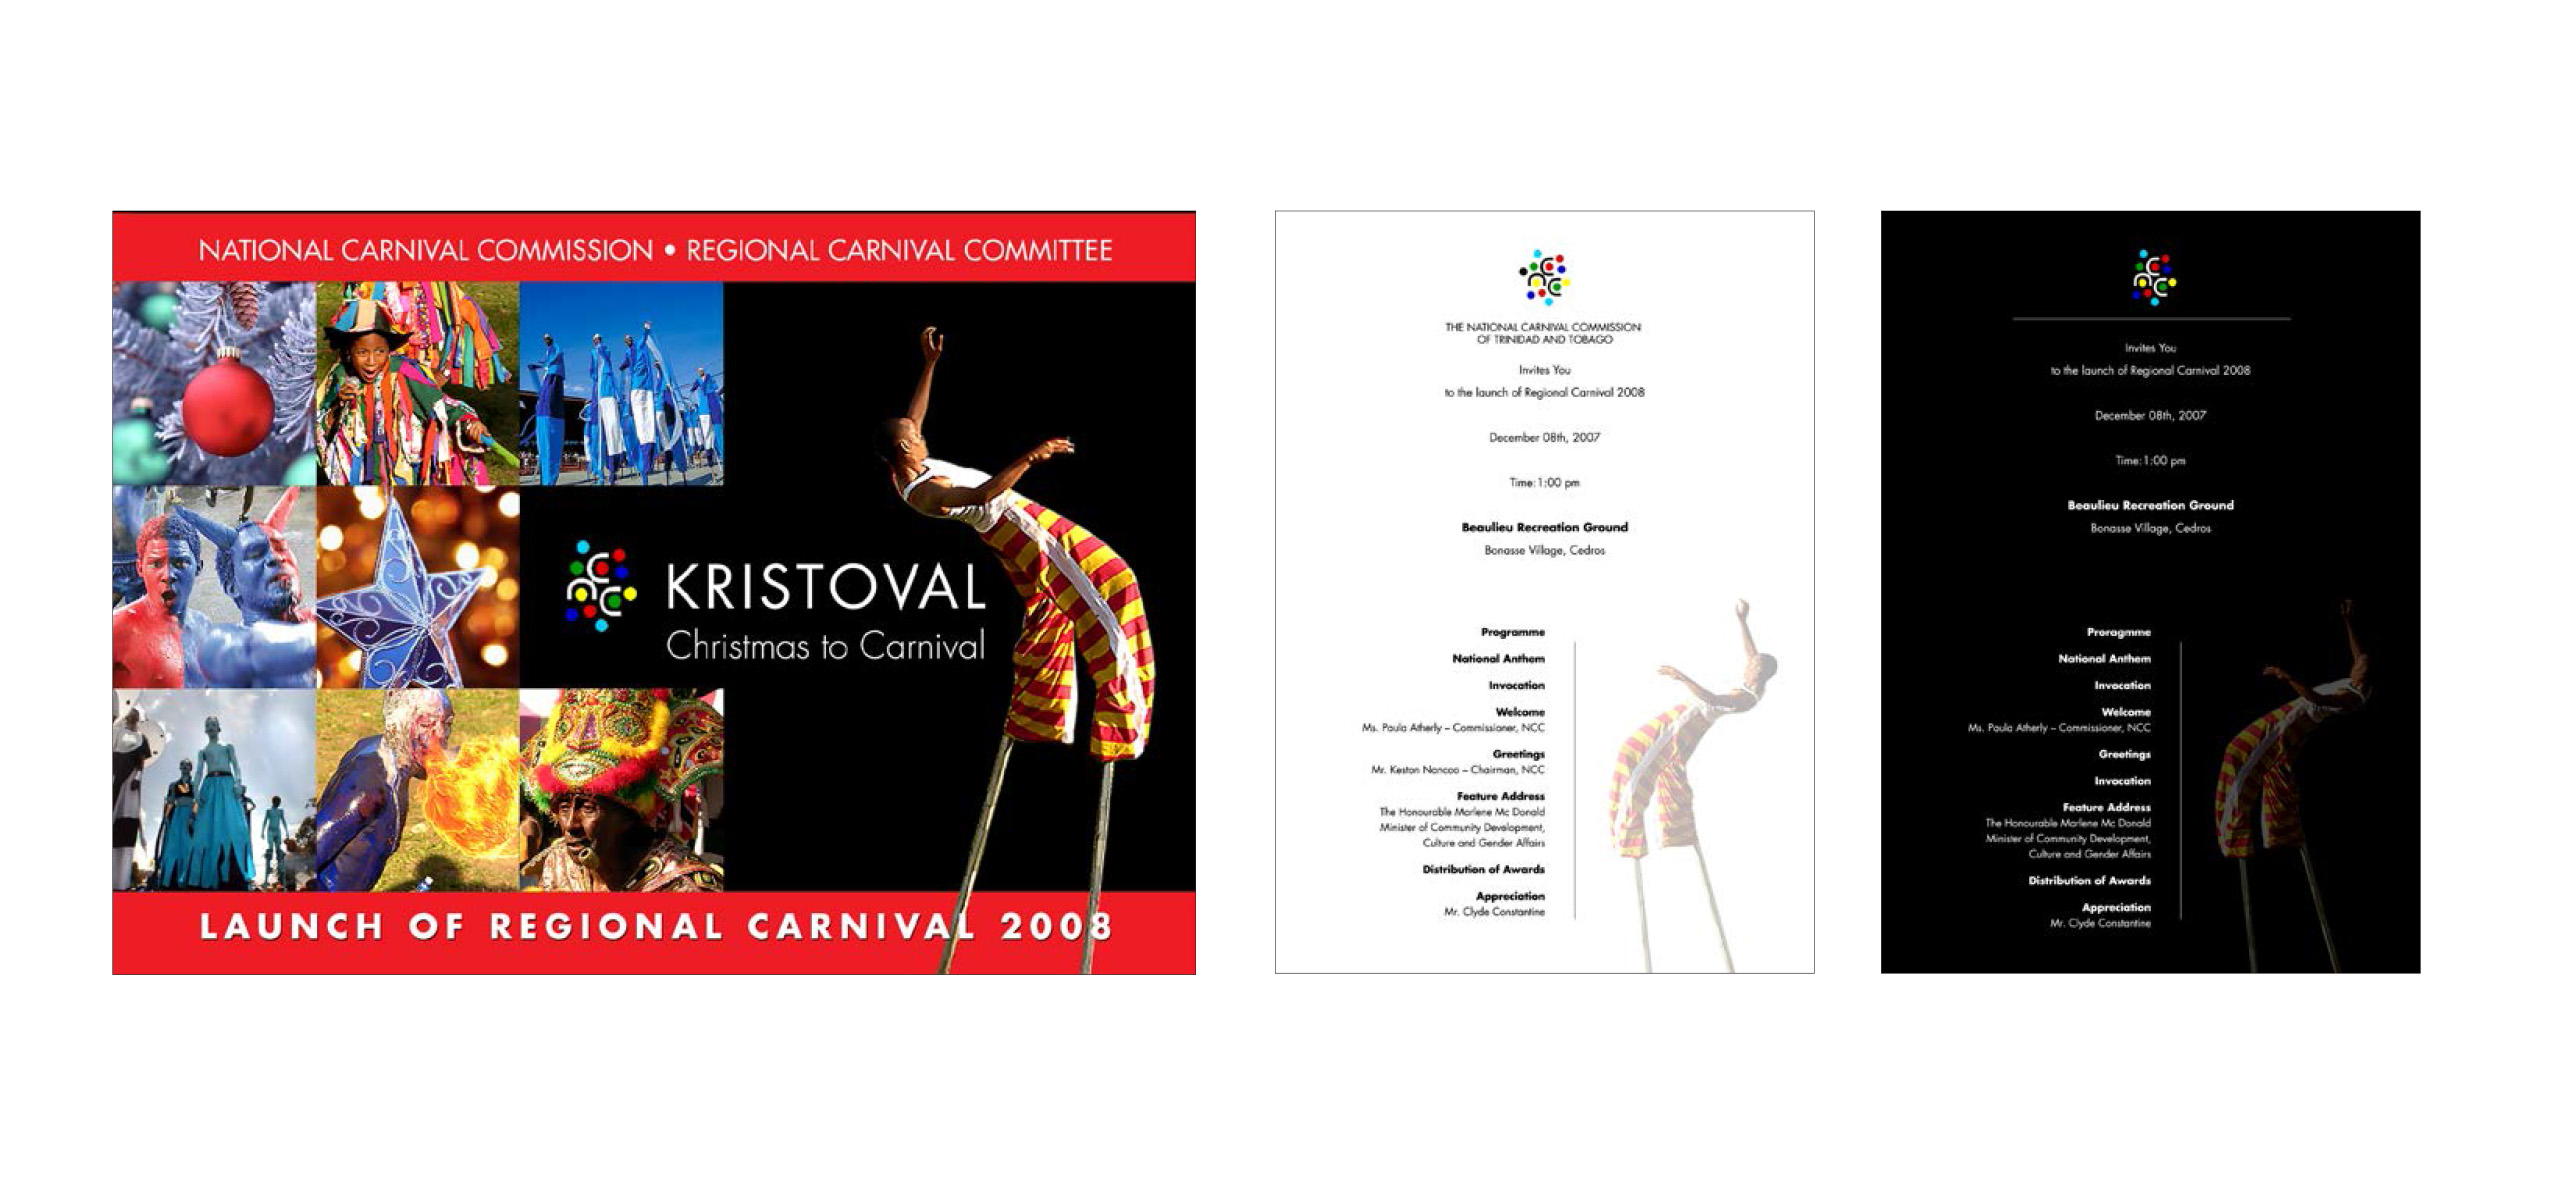 National Carnival Commission